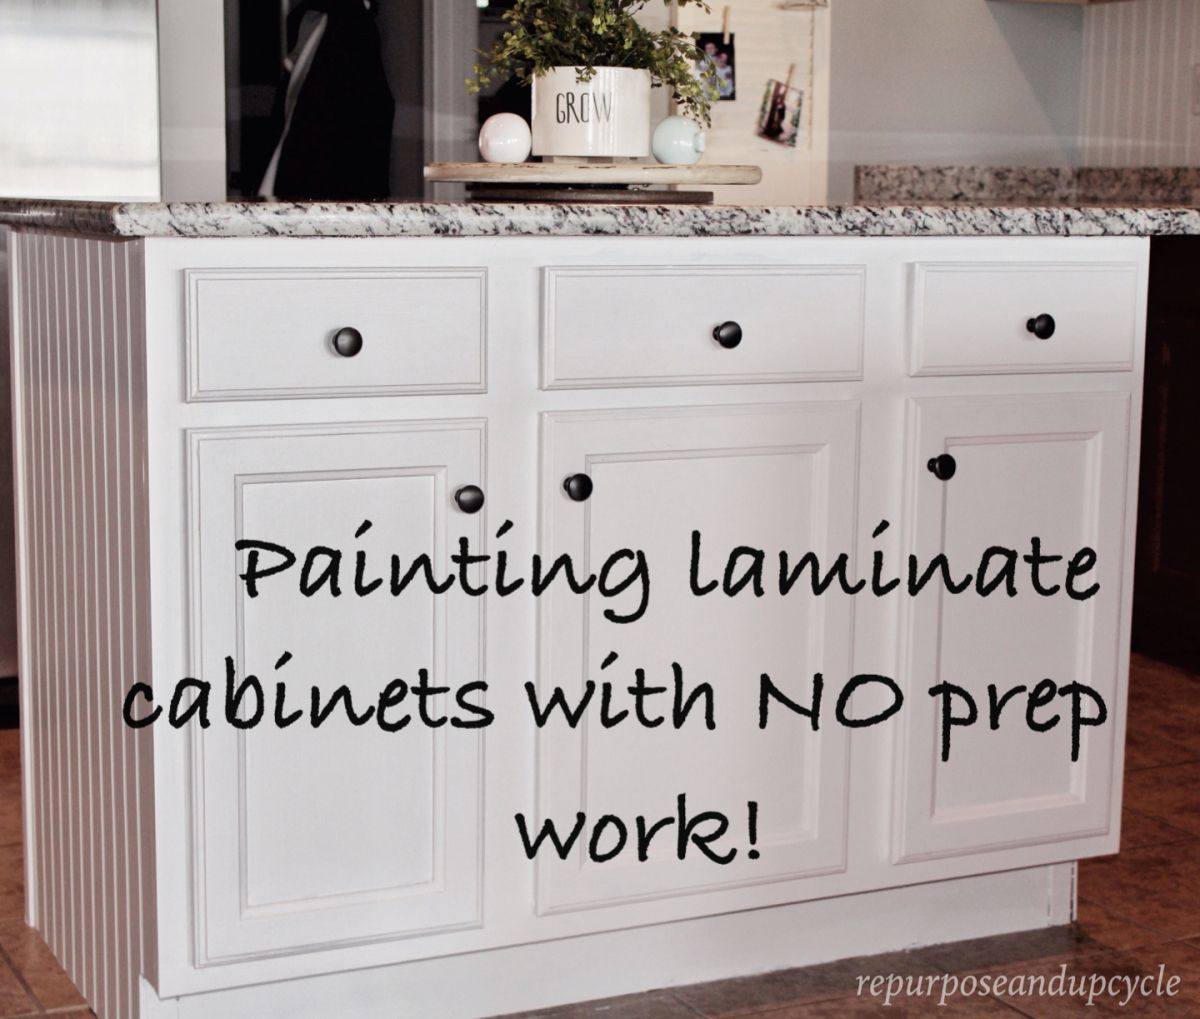 How To Paint Kitchen Cabinets In Mobile Home Painting Laminate Cabinets With No Prep Work